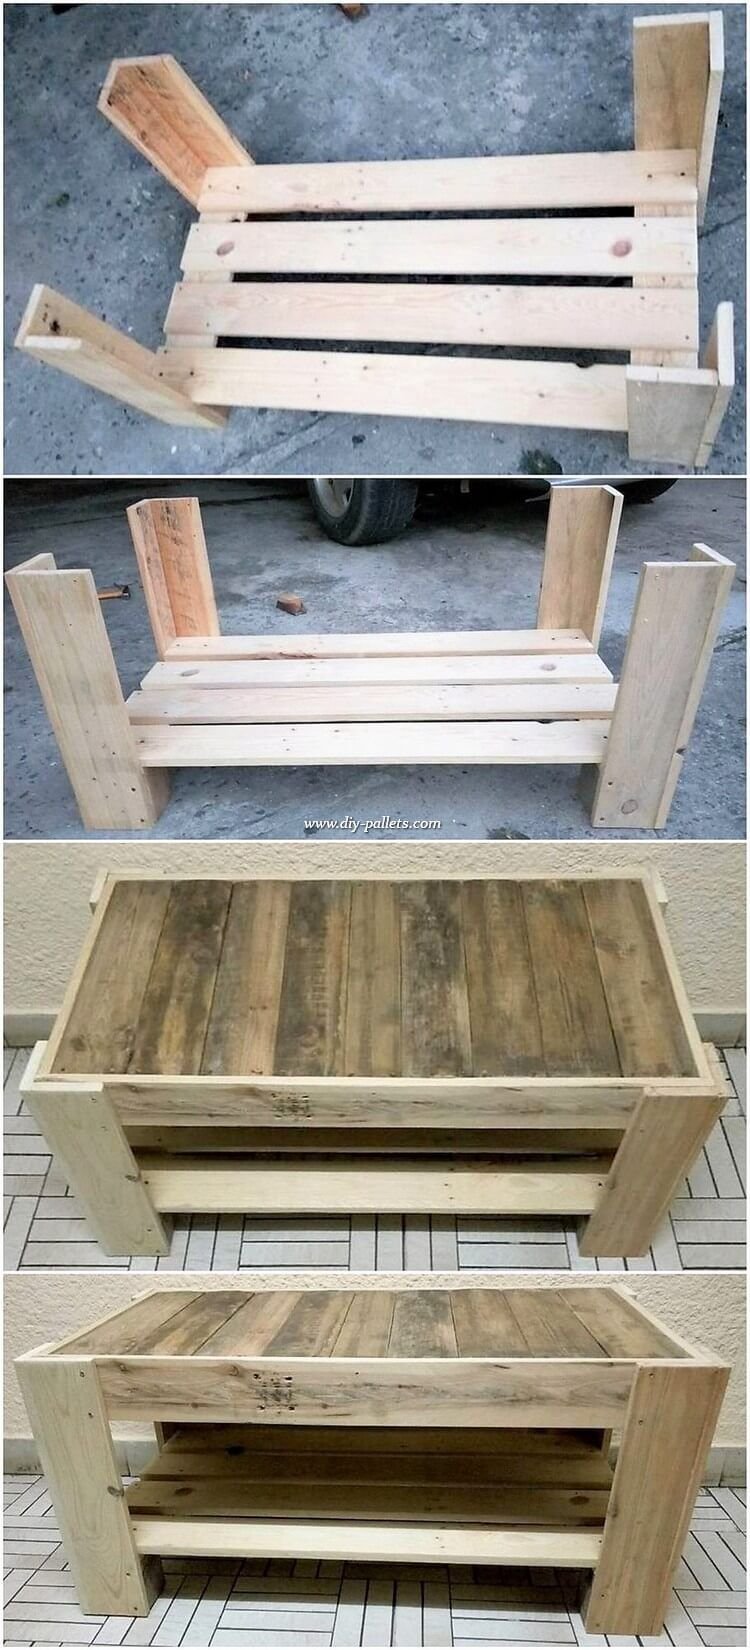 Scaffali Pallet Fai Da Te Incredible Diy Projects From Recycled Wood Pallets Woodwork